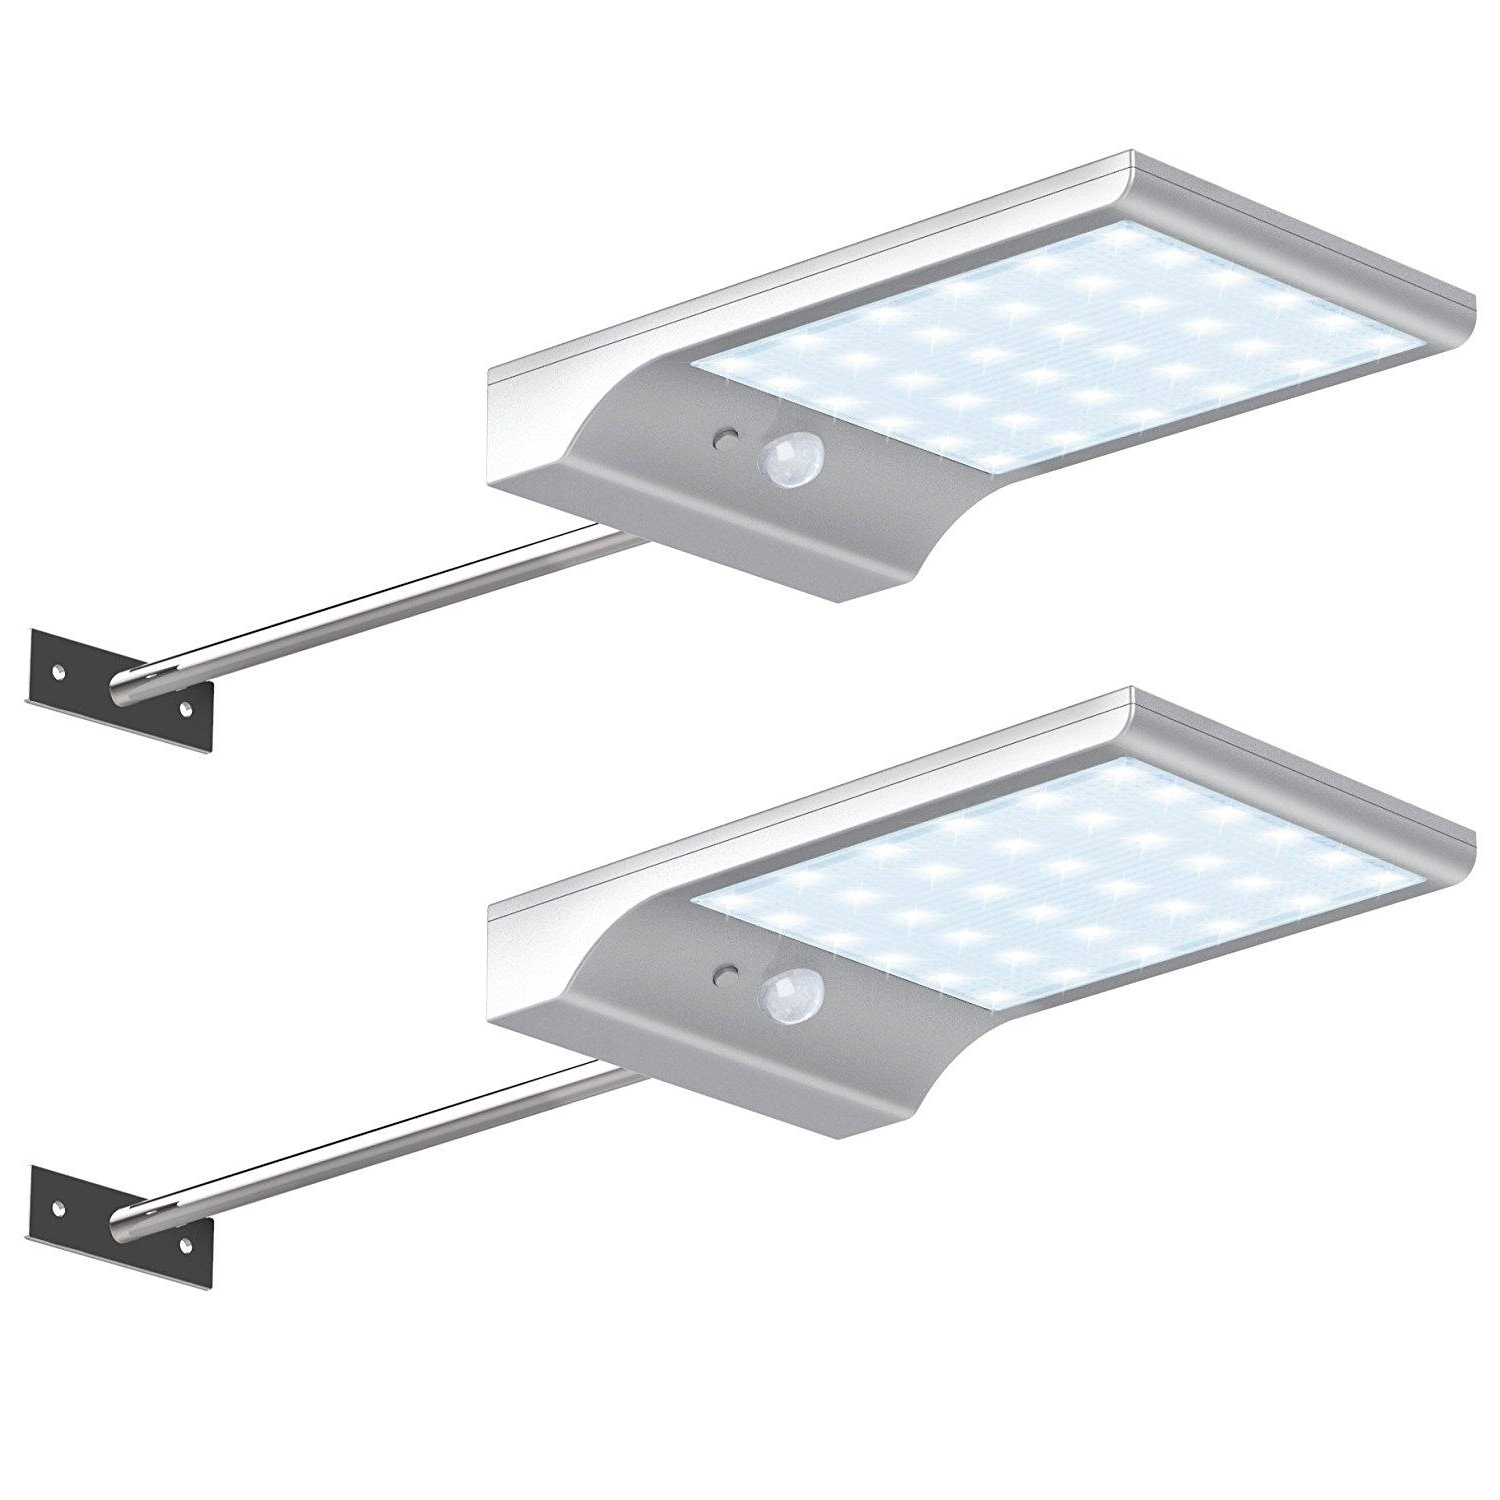 2019 Shop Outdoor Wall Lamps Online, 36 Led Solar Gutter Lights Wall In Outdoor Ceiling Mounted Security Lights (View 3 of 20)